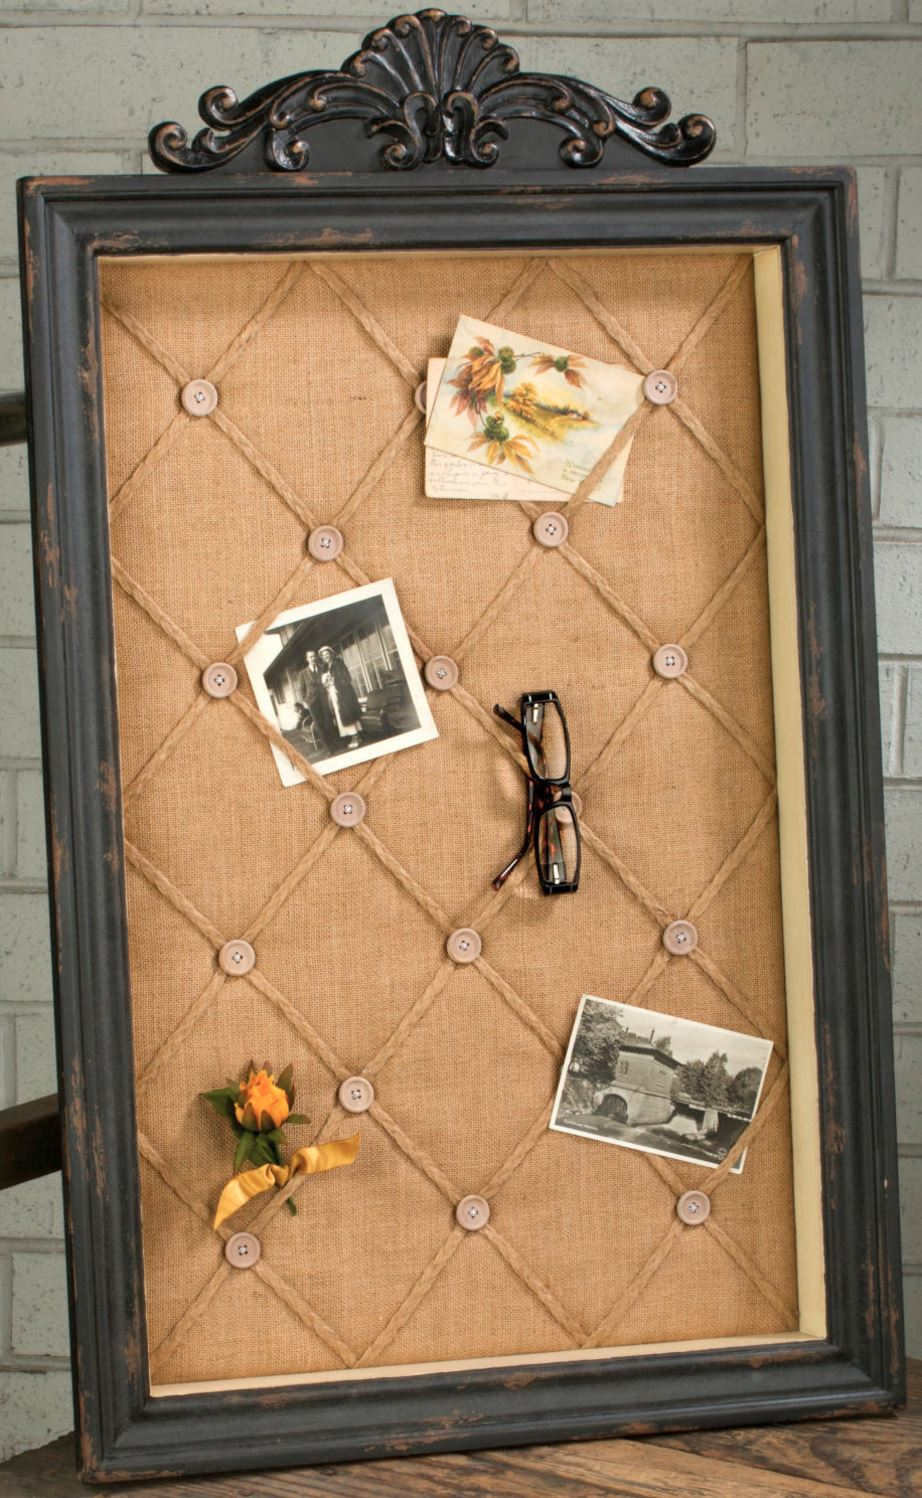 Photo Holders - Antique Black Wall Memo Board